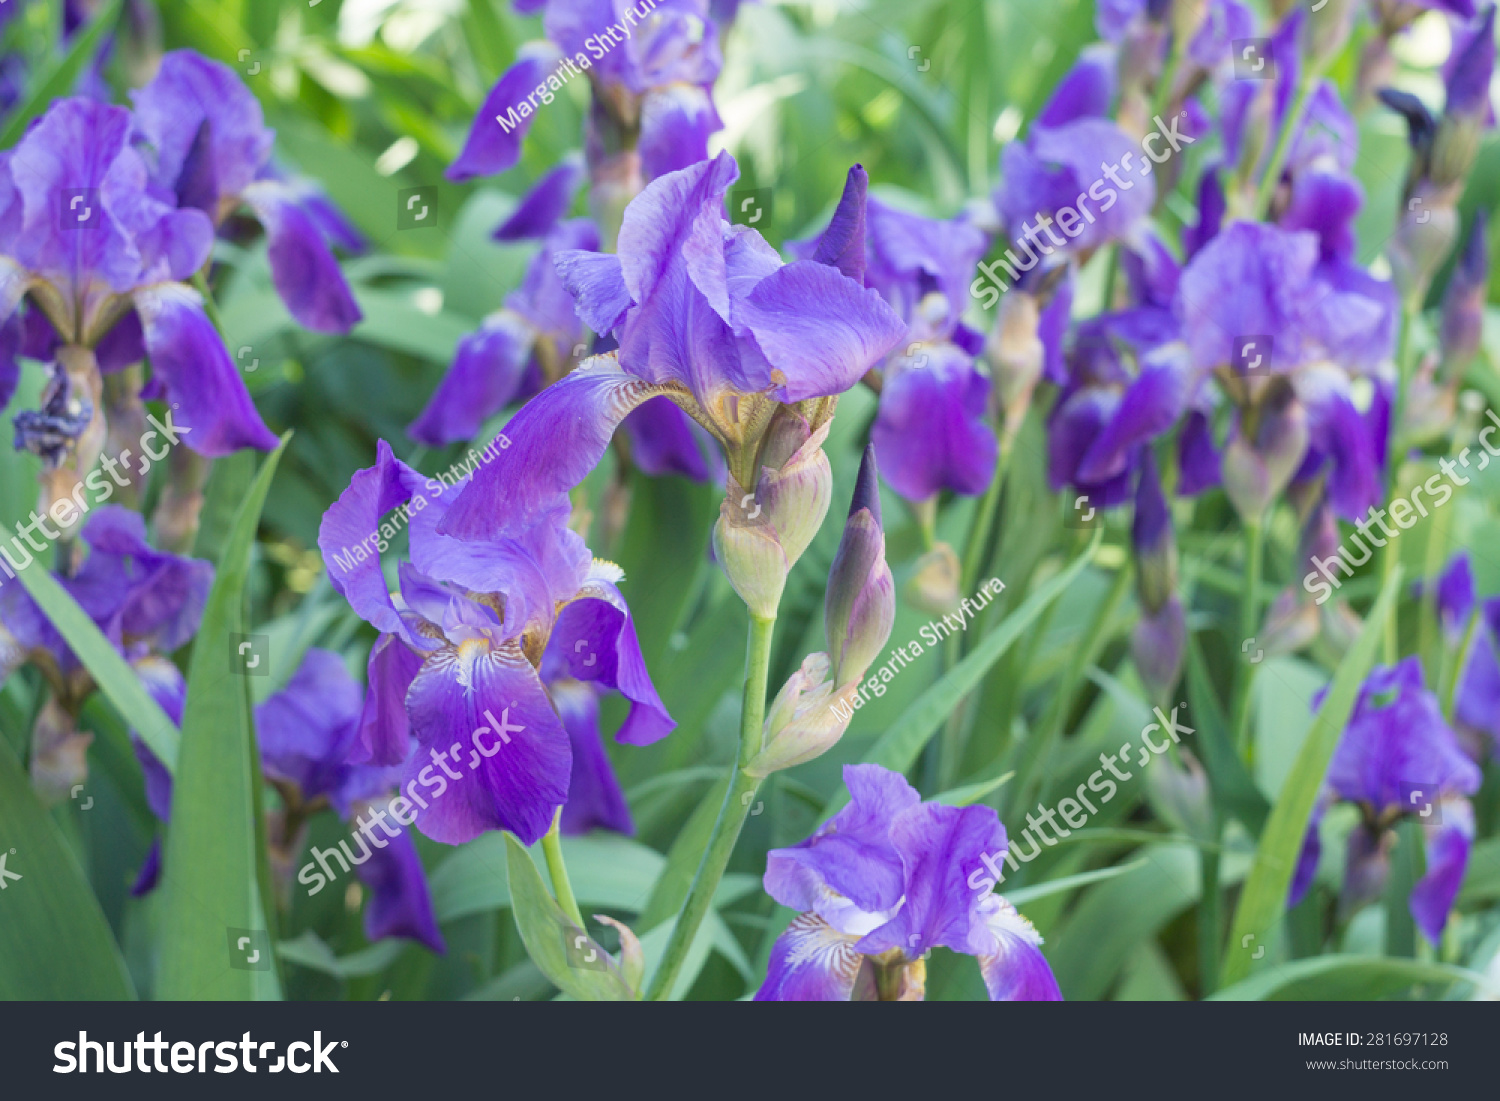 Flowers iris choice image flower wallpaper hd close purple iris flowers iris blooming stock photo 281697128 close up of purple iris flowers iris izmirmasajfo Choice Image